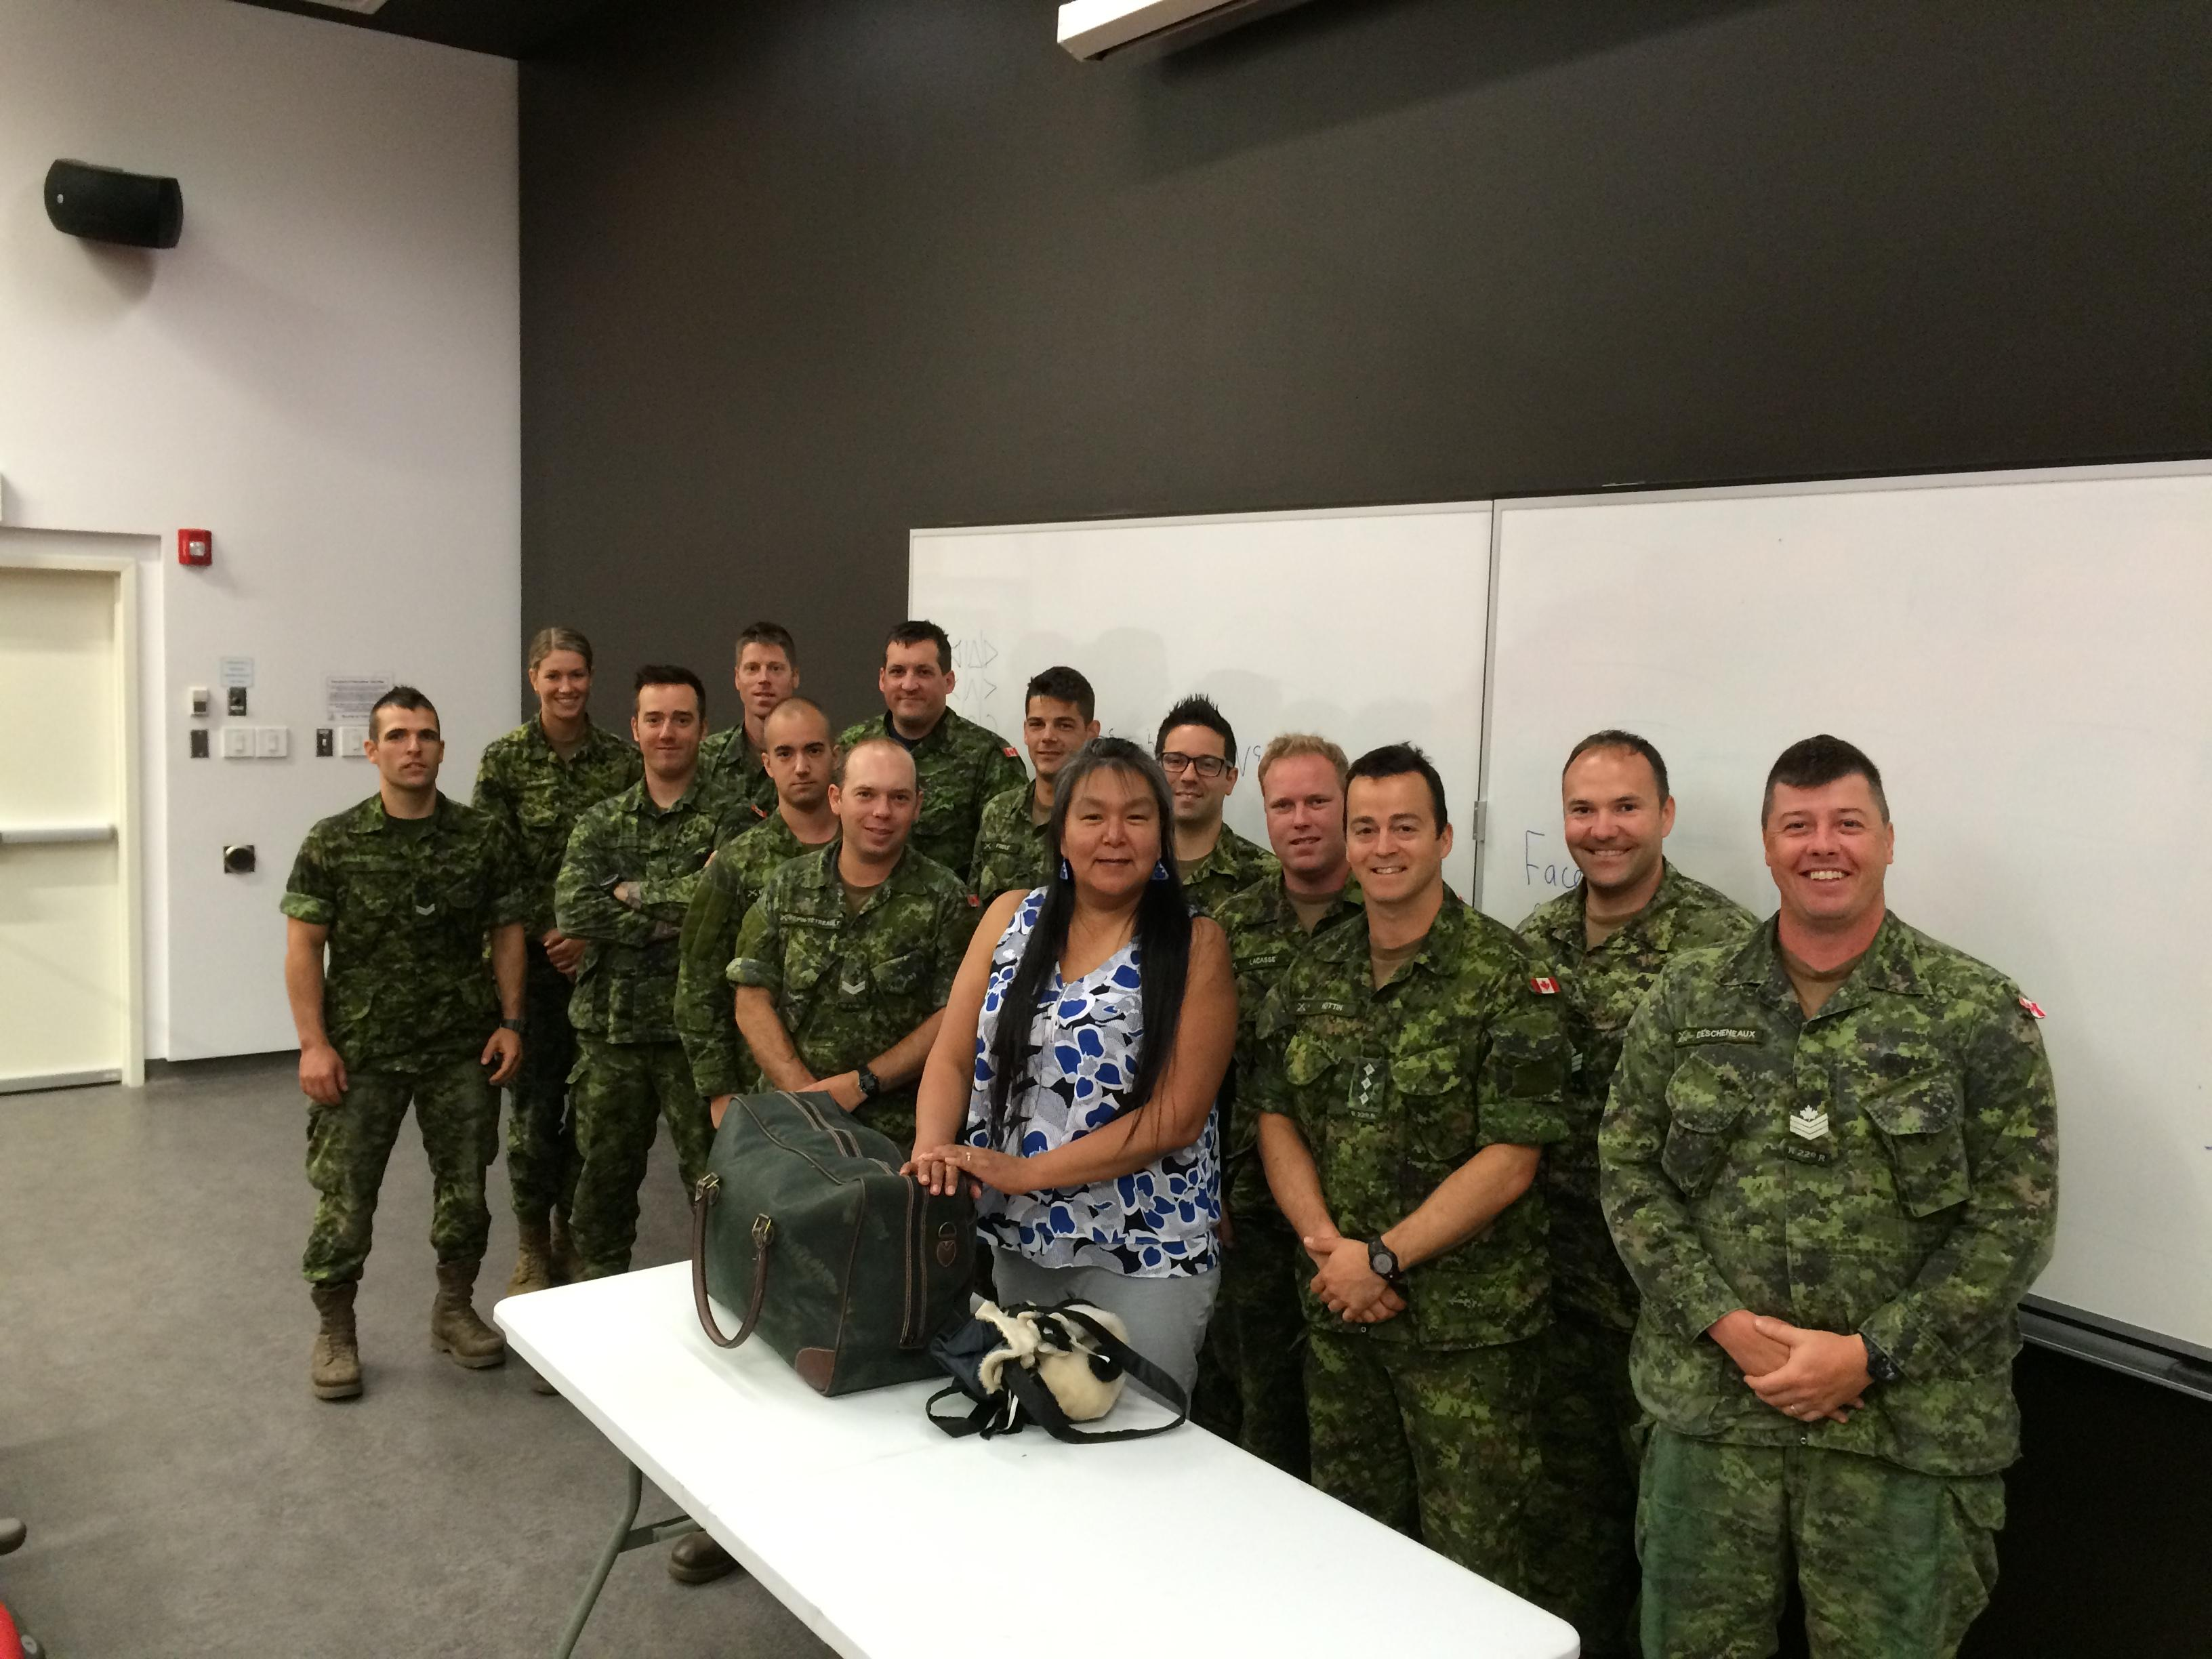 Participants of the Aboriginal Awareness course with Inuk guest speaker Annie Baron in Valcartier, Quebec, May 28-30. Photo by: Capt Alex Trousdale, 1st Battalion Royale 22e Régiment. ©201x DND/MDN Canada.